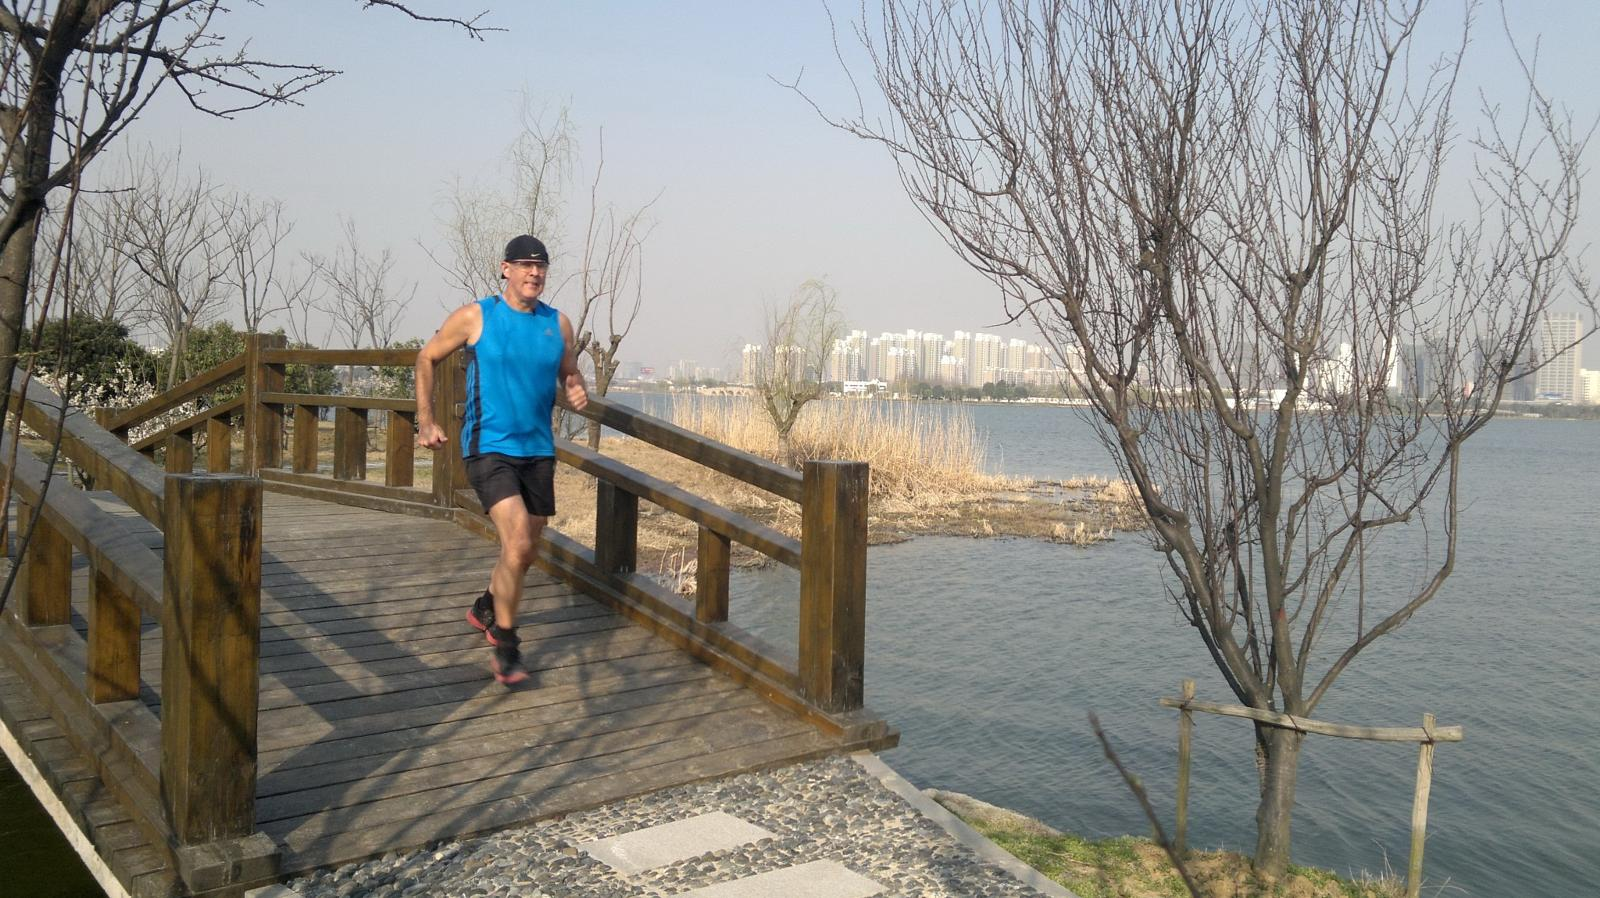 的照片 Shihu-Lake-16.75-km-Jon-De-Leon-Suzhou-China-3-3-13